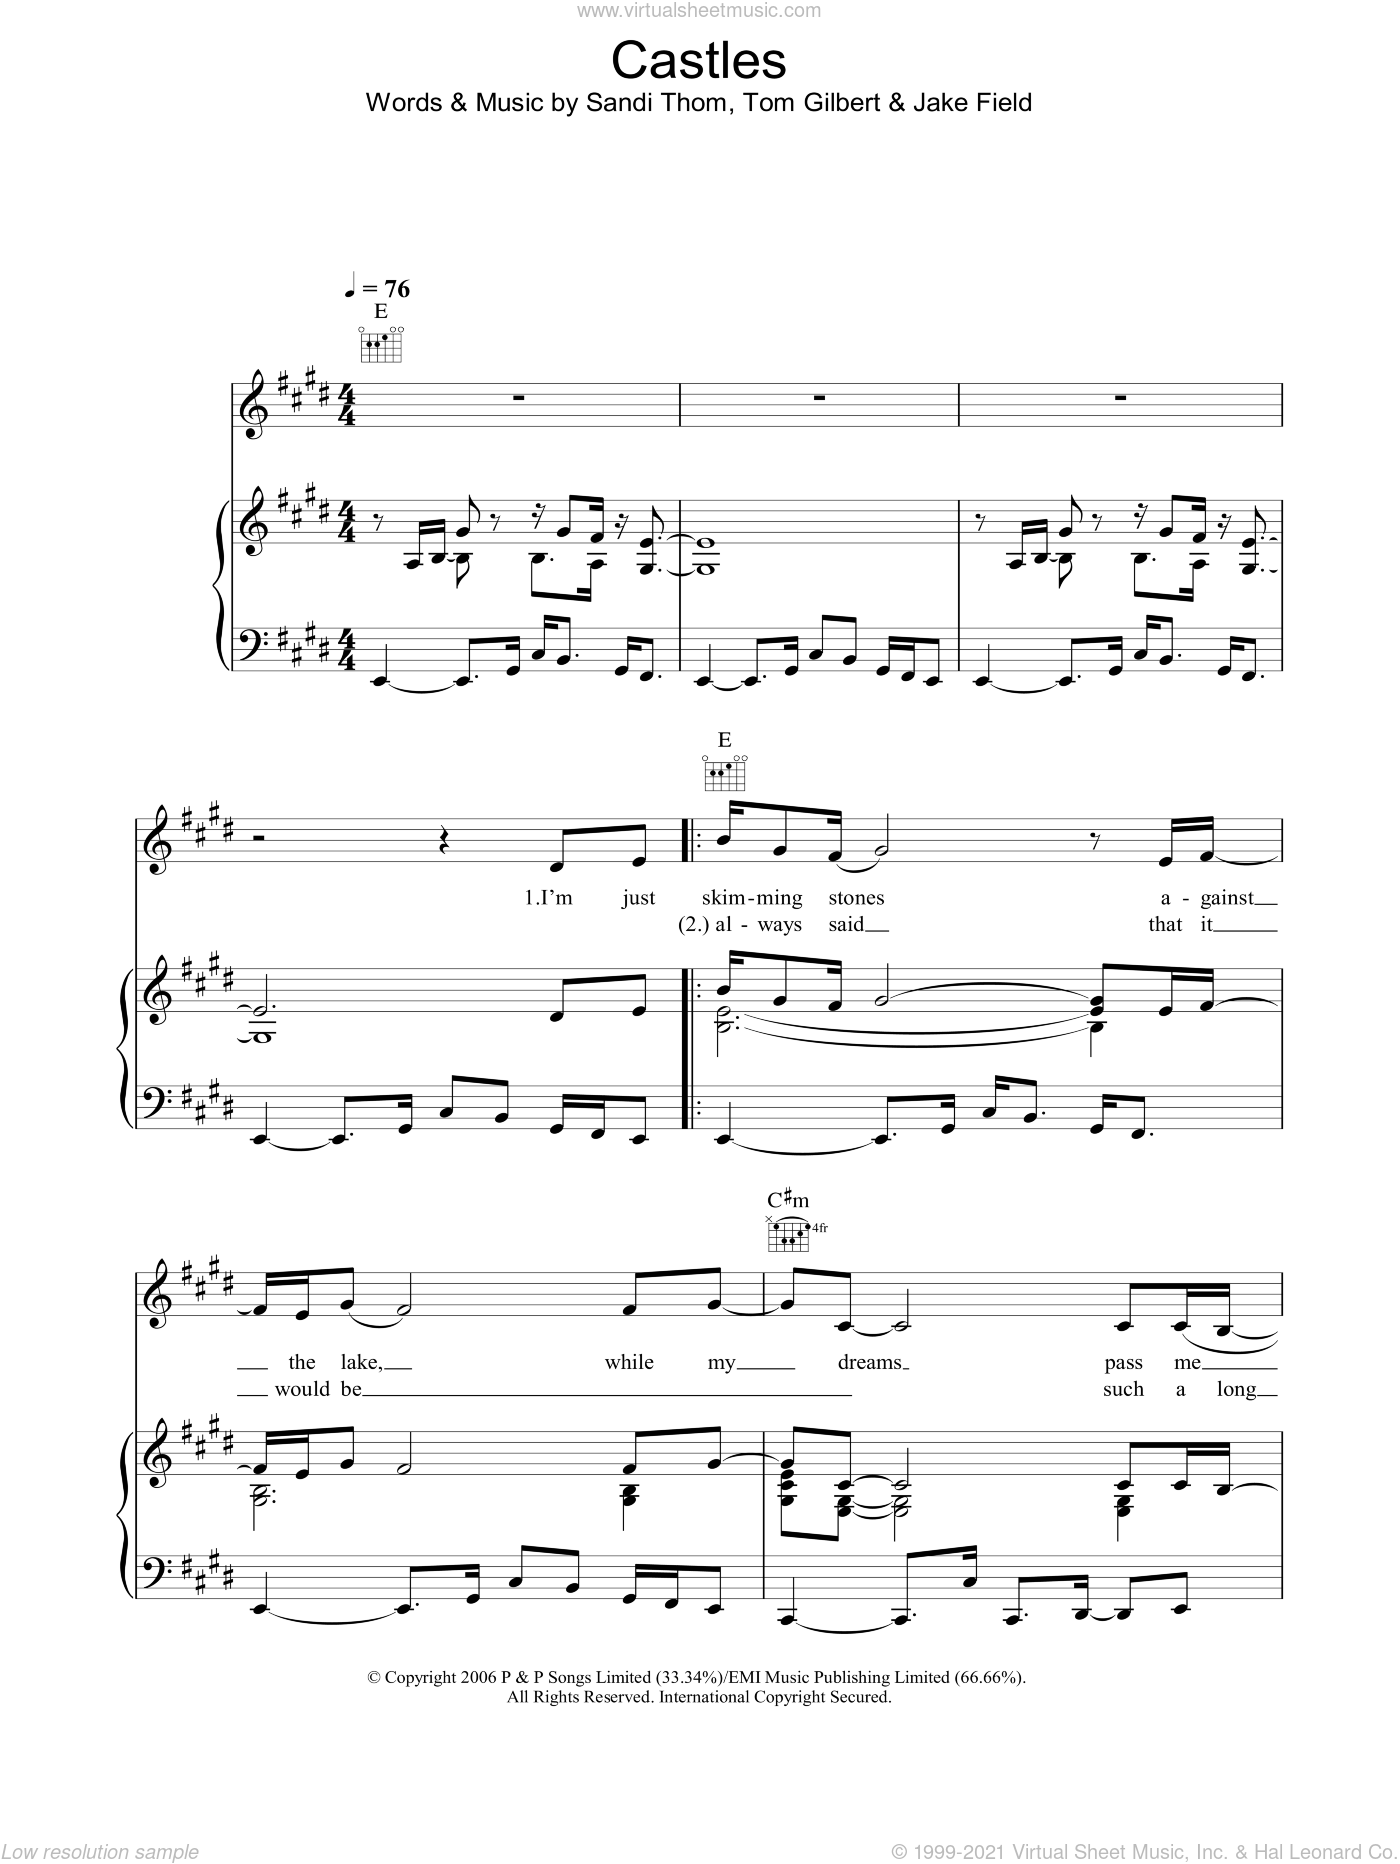 Castles sheet music for voice, piano or guitar by Tom Gilbert